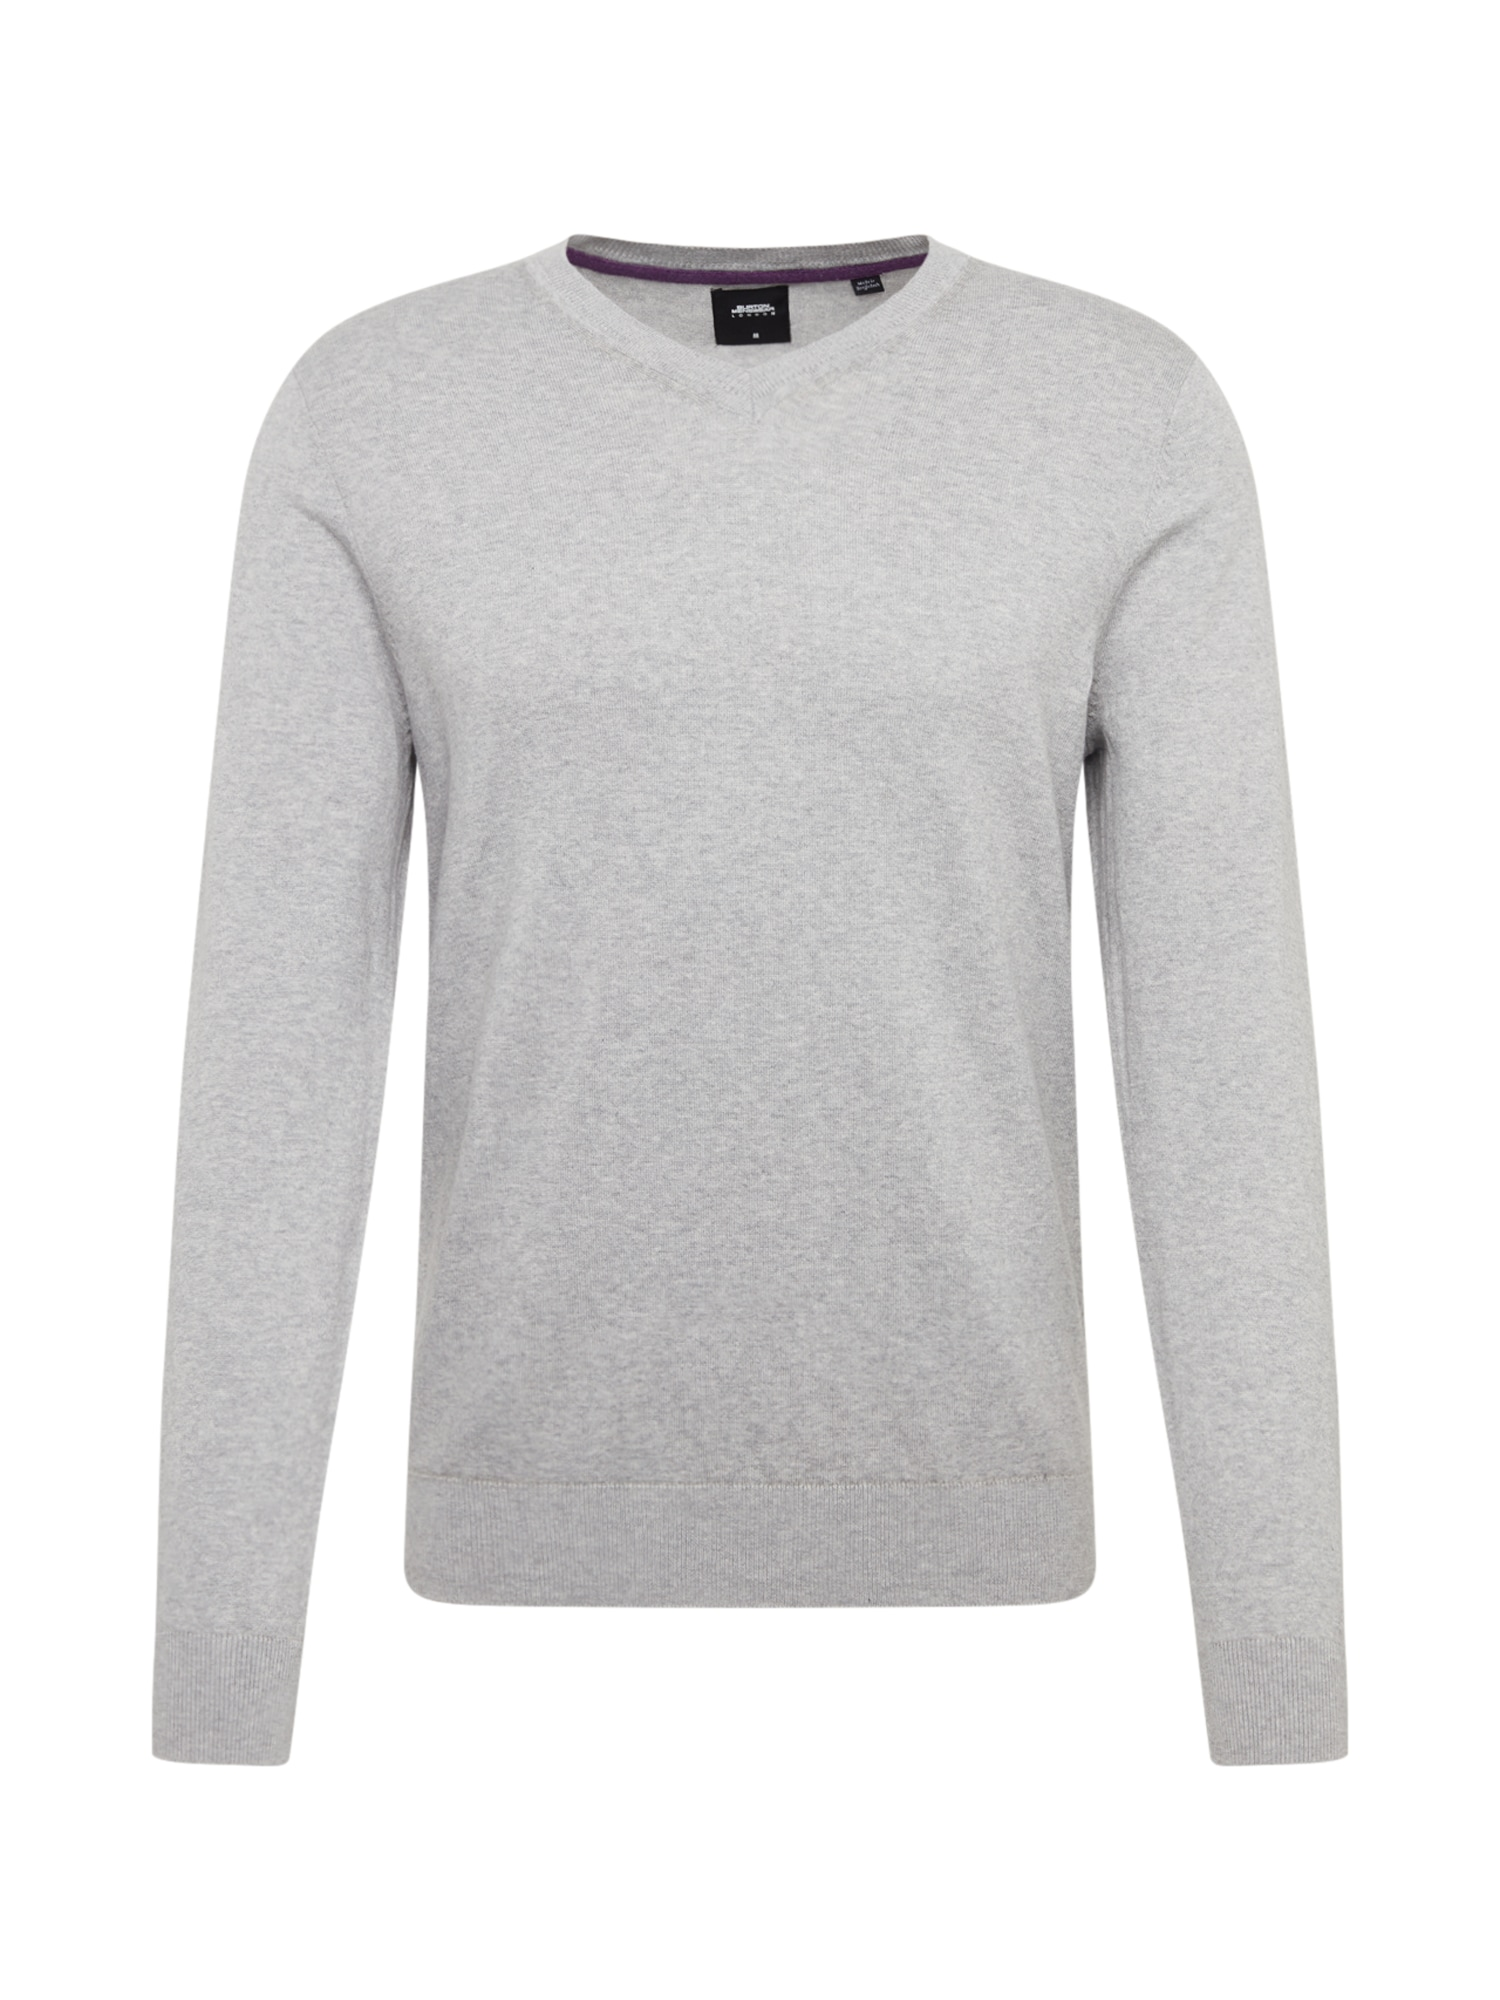 BURTON MENSWEAR LONDON Svetr 'core vee light grey'  šedá